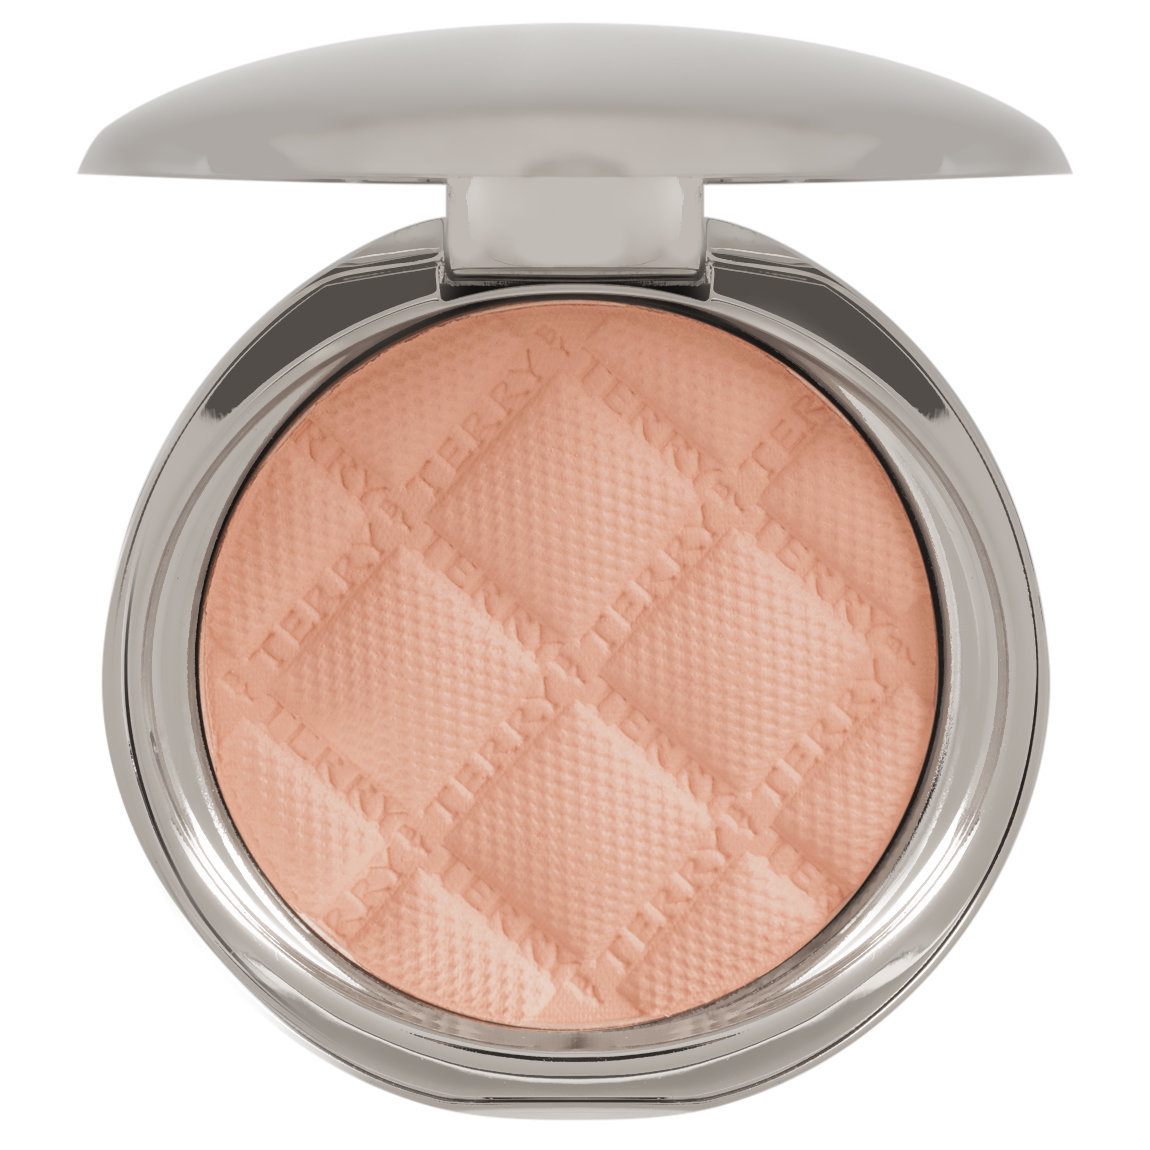 BY TERRY Terrybly Densiliss Compact 2 Fleshtone Nude alternative view 1 - product swatch.